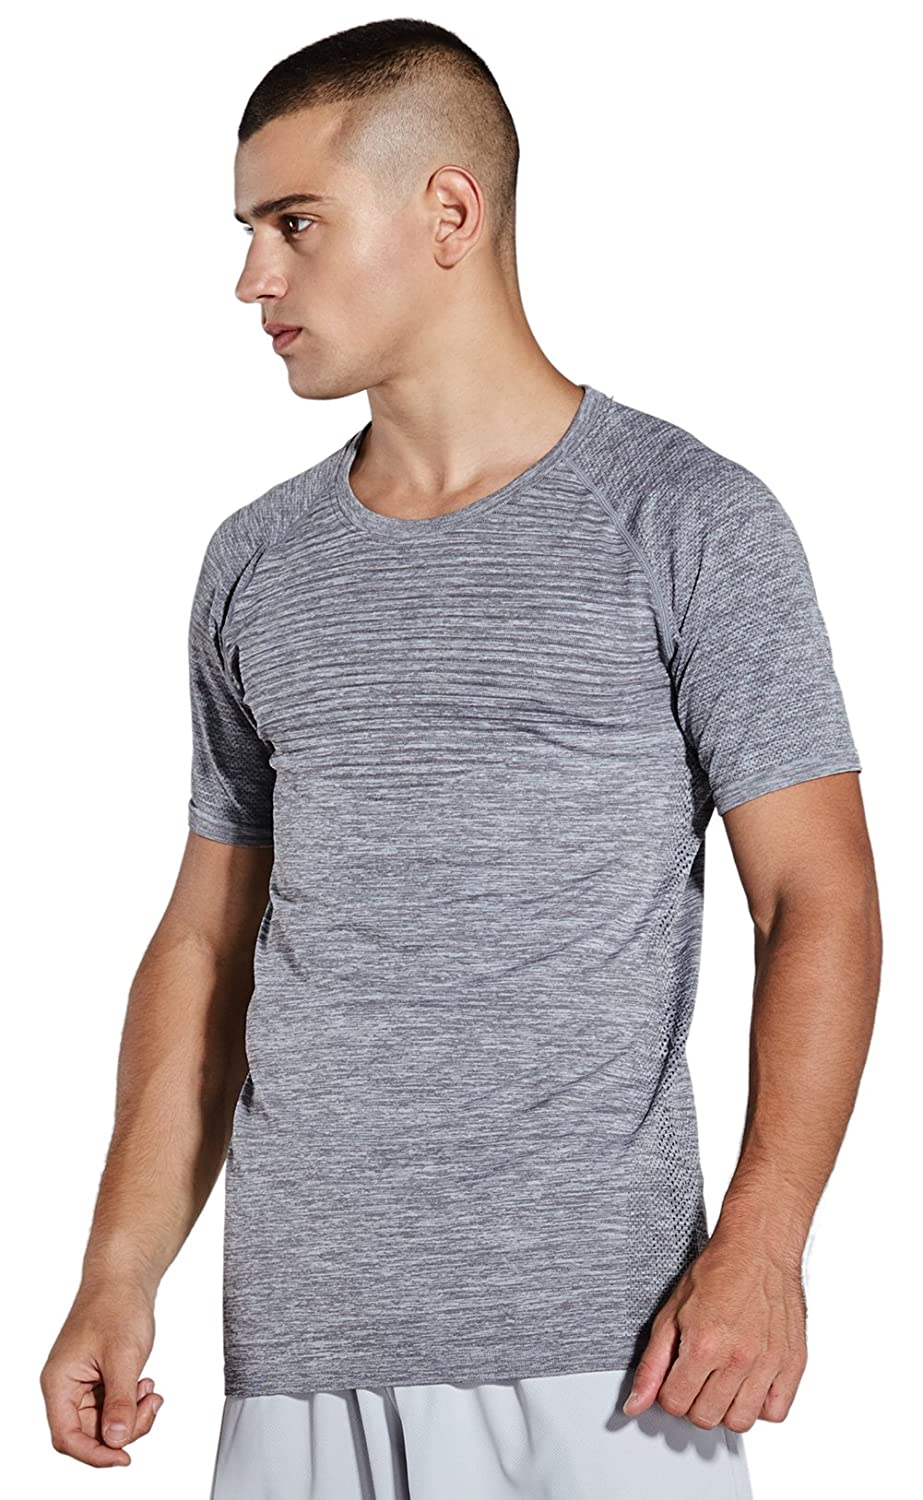 984989546 KomPrexx Mens Workout T-Shirts Extra Long Gym Tops Short Sleeve Sports Tees  Fitness Athletic Shirt Male Sportswear (Gray,S): Amazon.co.uk: Sports &  Outdoors